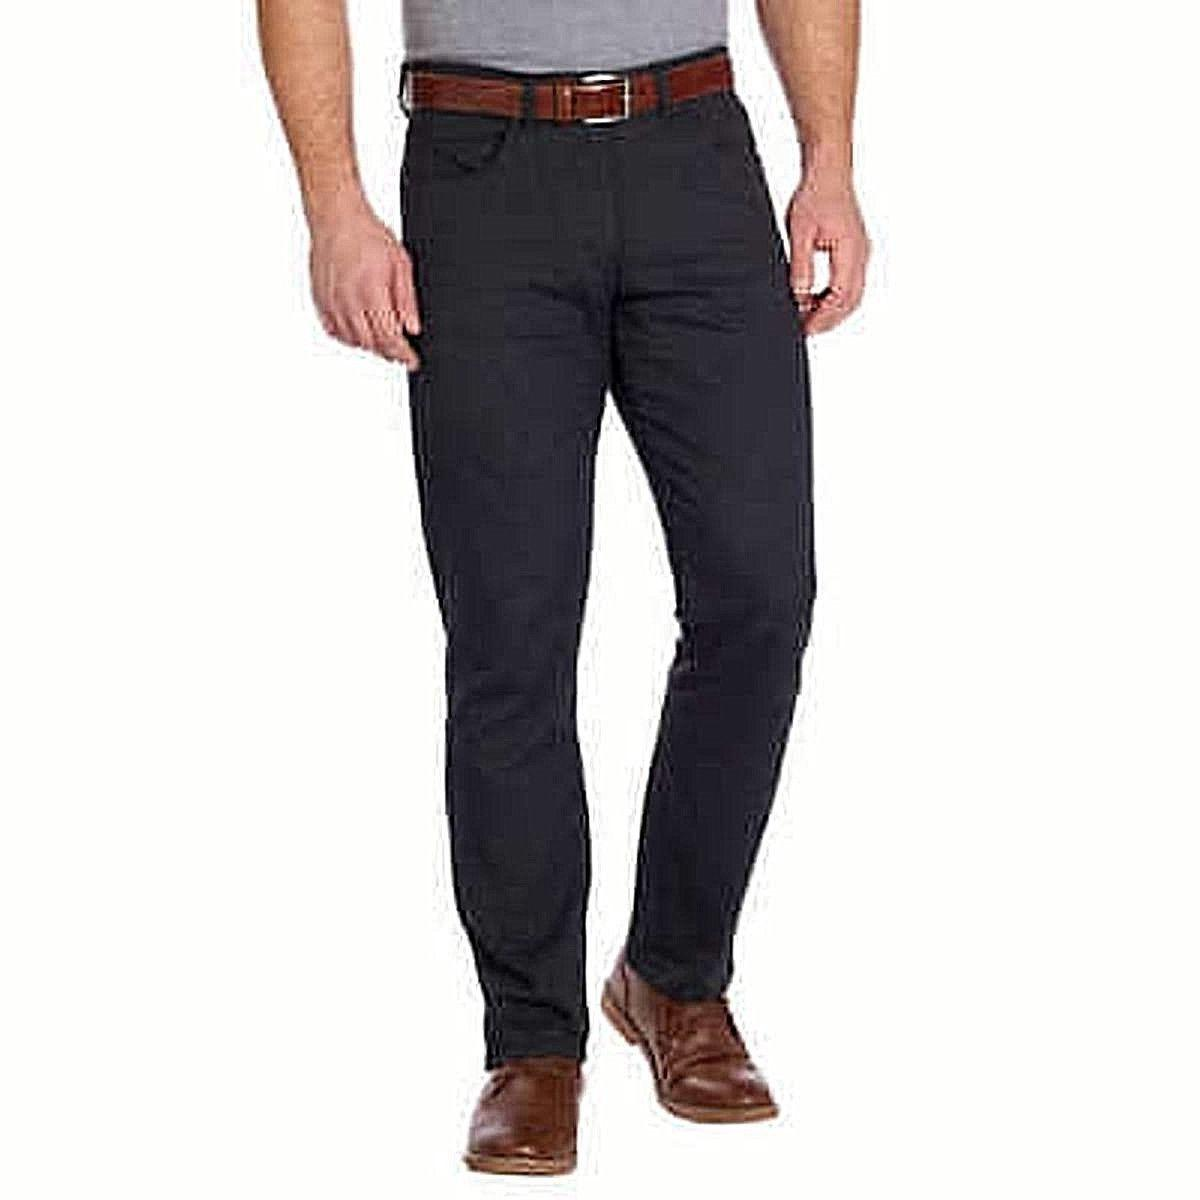 Calvin Klein Men's Stretch Slim Fit Lifestyle Pants - Size: